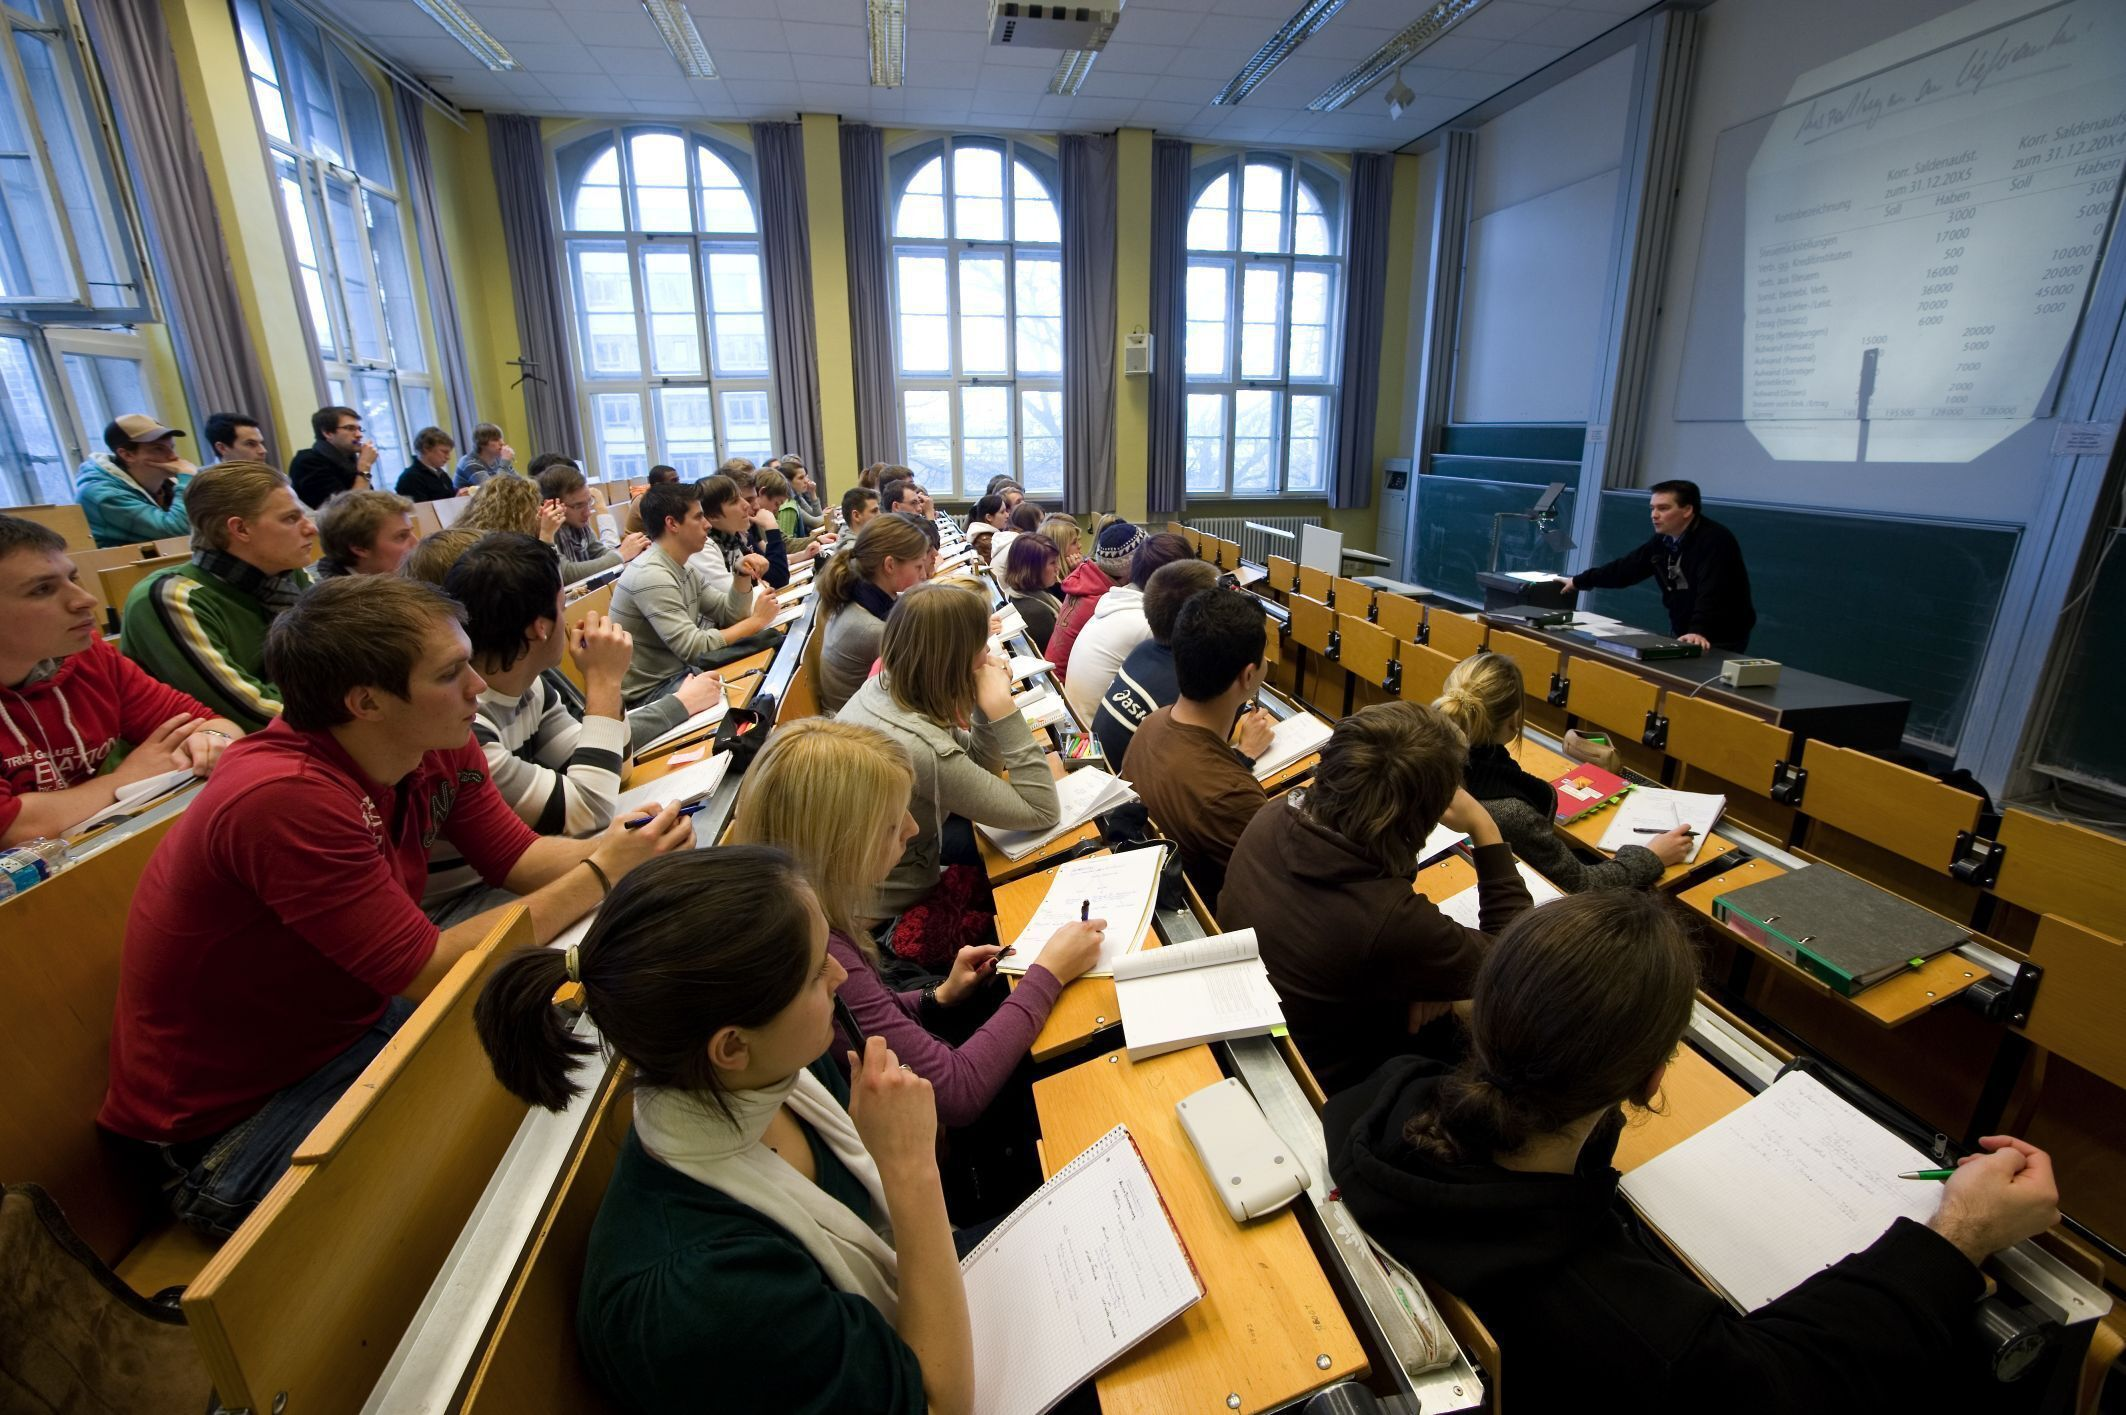 Lecture room with students